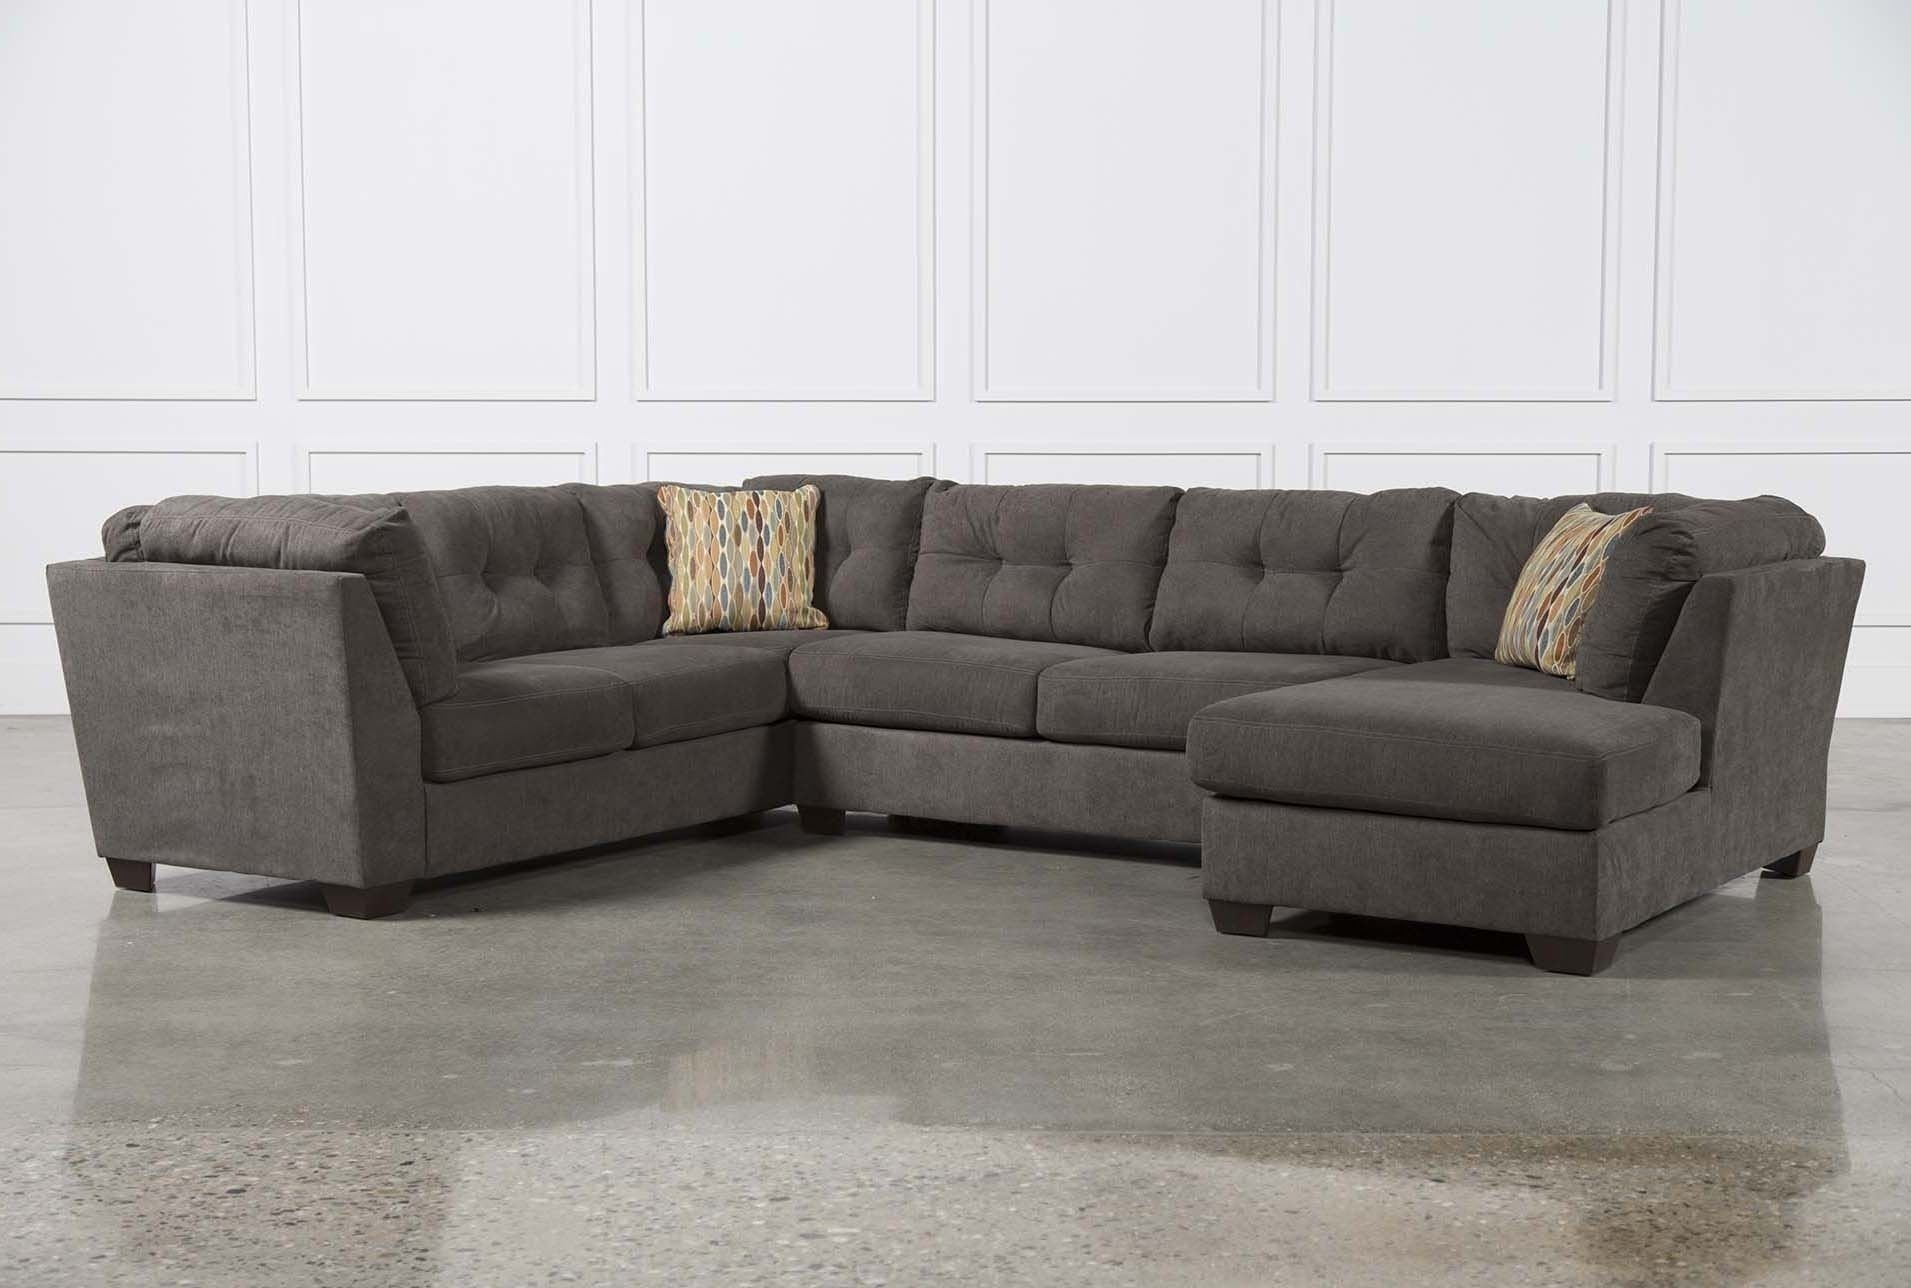 3 Piece Sectional Sleeper Sofas | Sleeper Sofas Intended For Harper Down 3 Piece Sectionals (Photo 5 of 30)